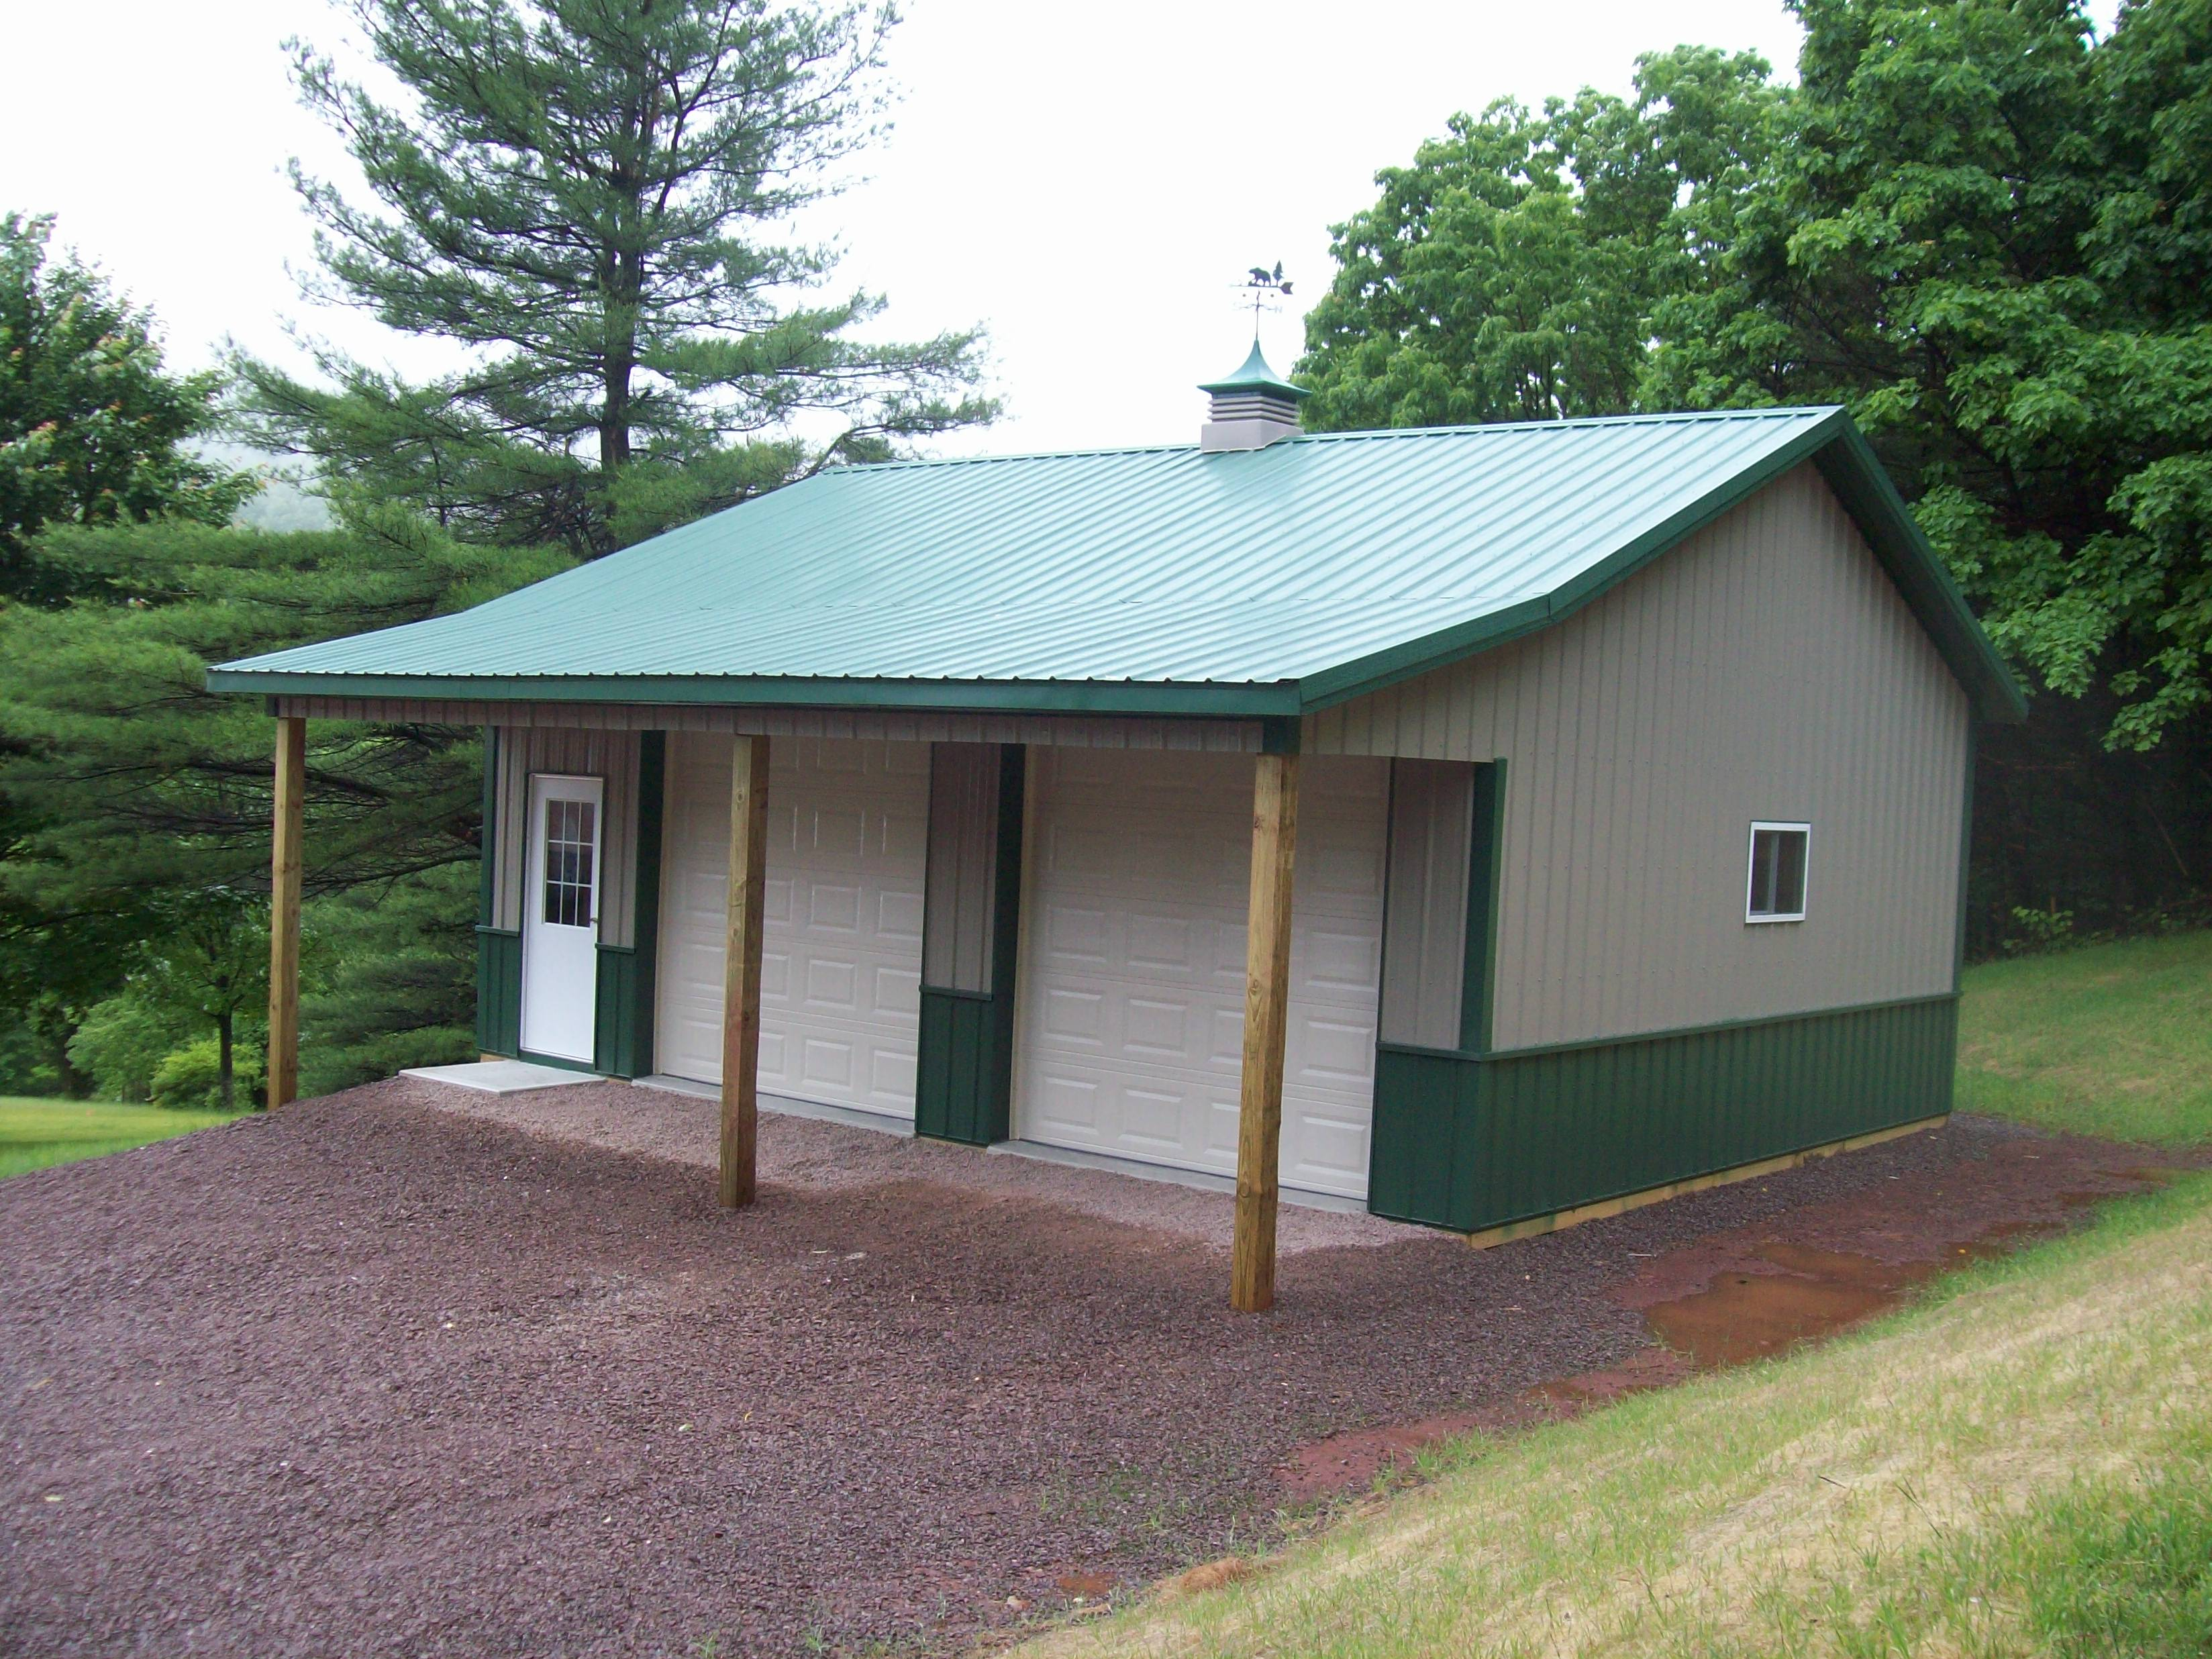 house garage loft delton steel for metal packages trusses kits pole your barns with ho prices barn truss or ideas constructing plans costs ohio pa